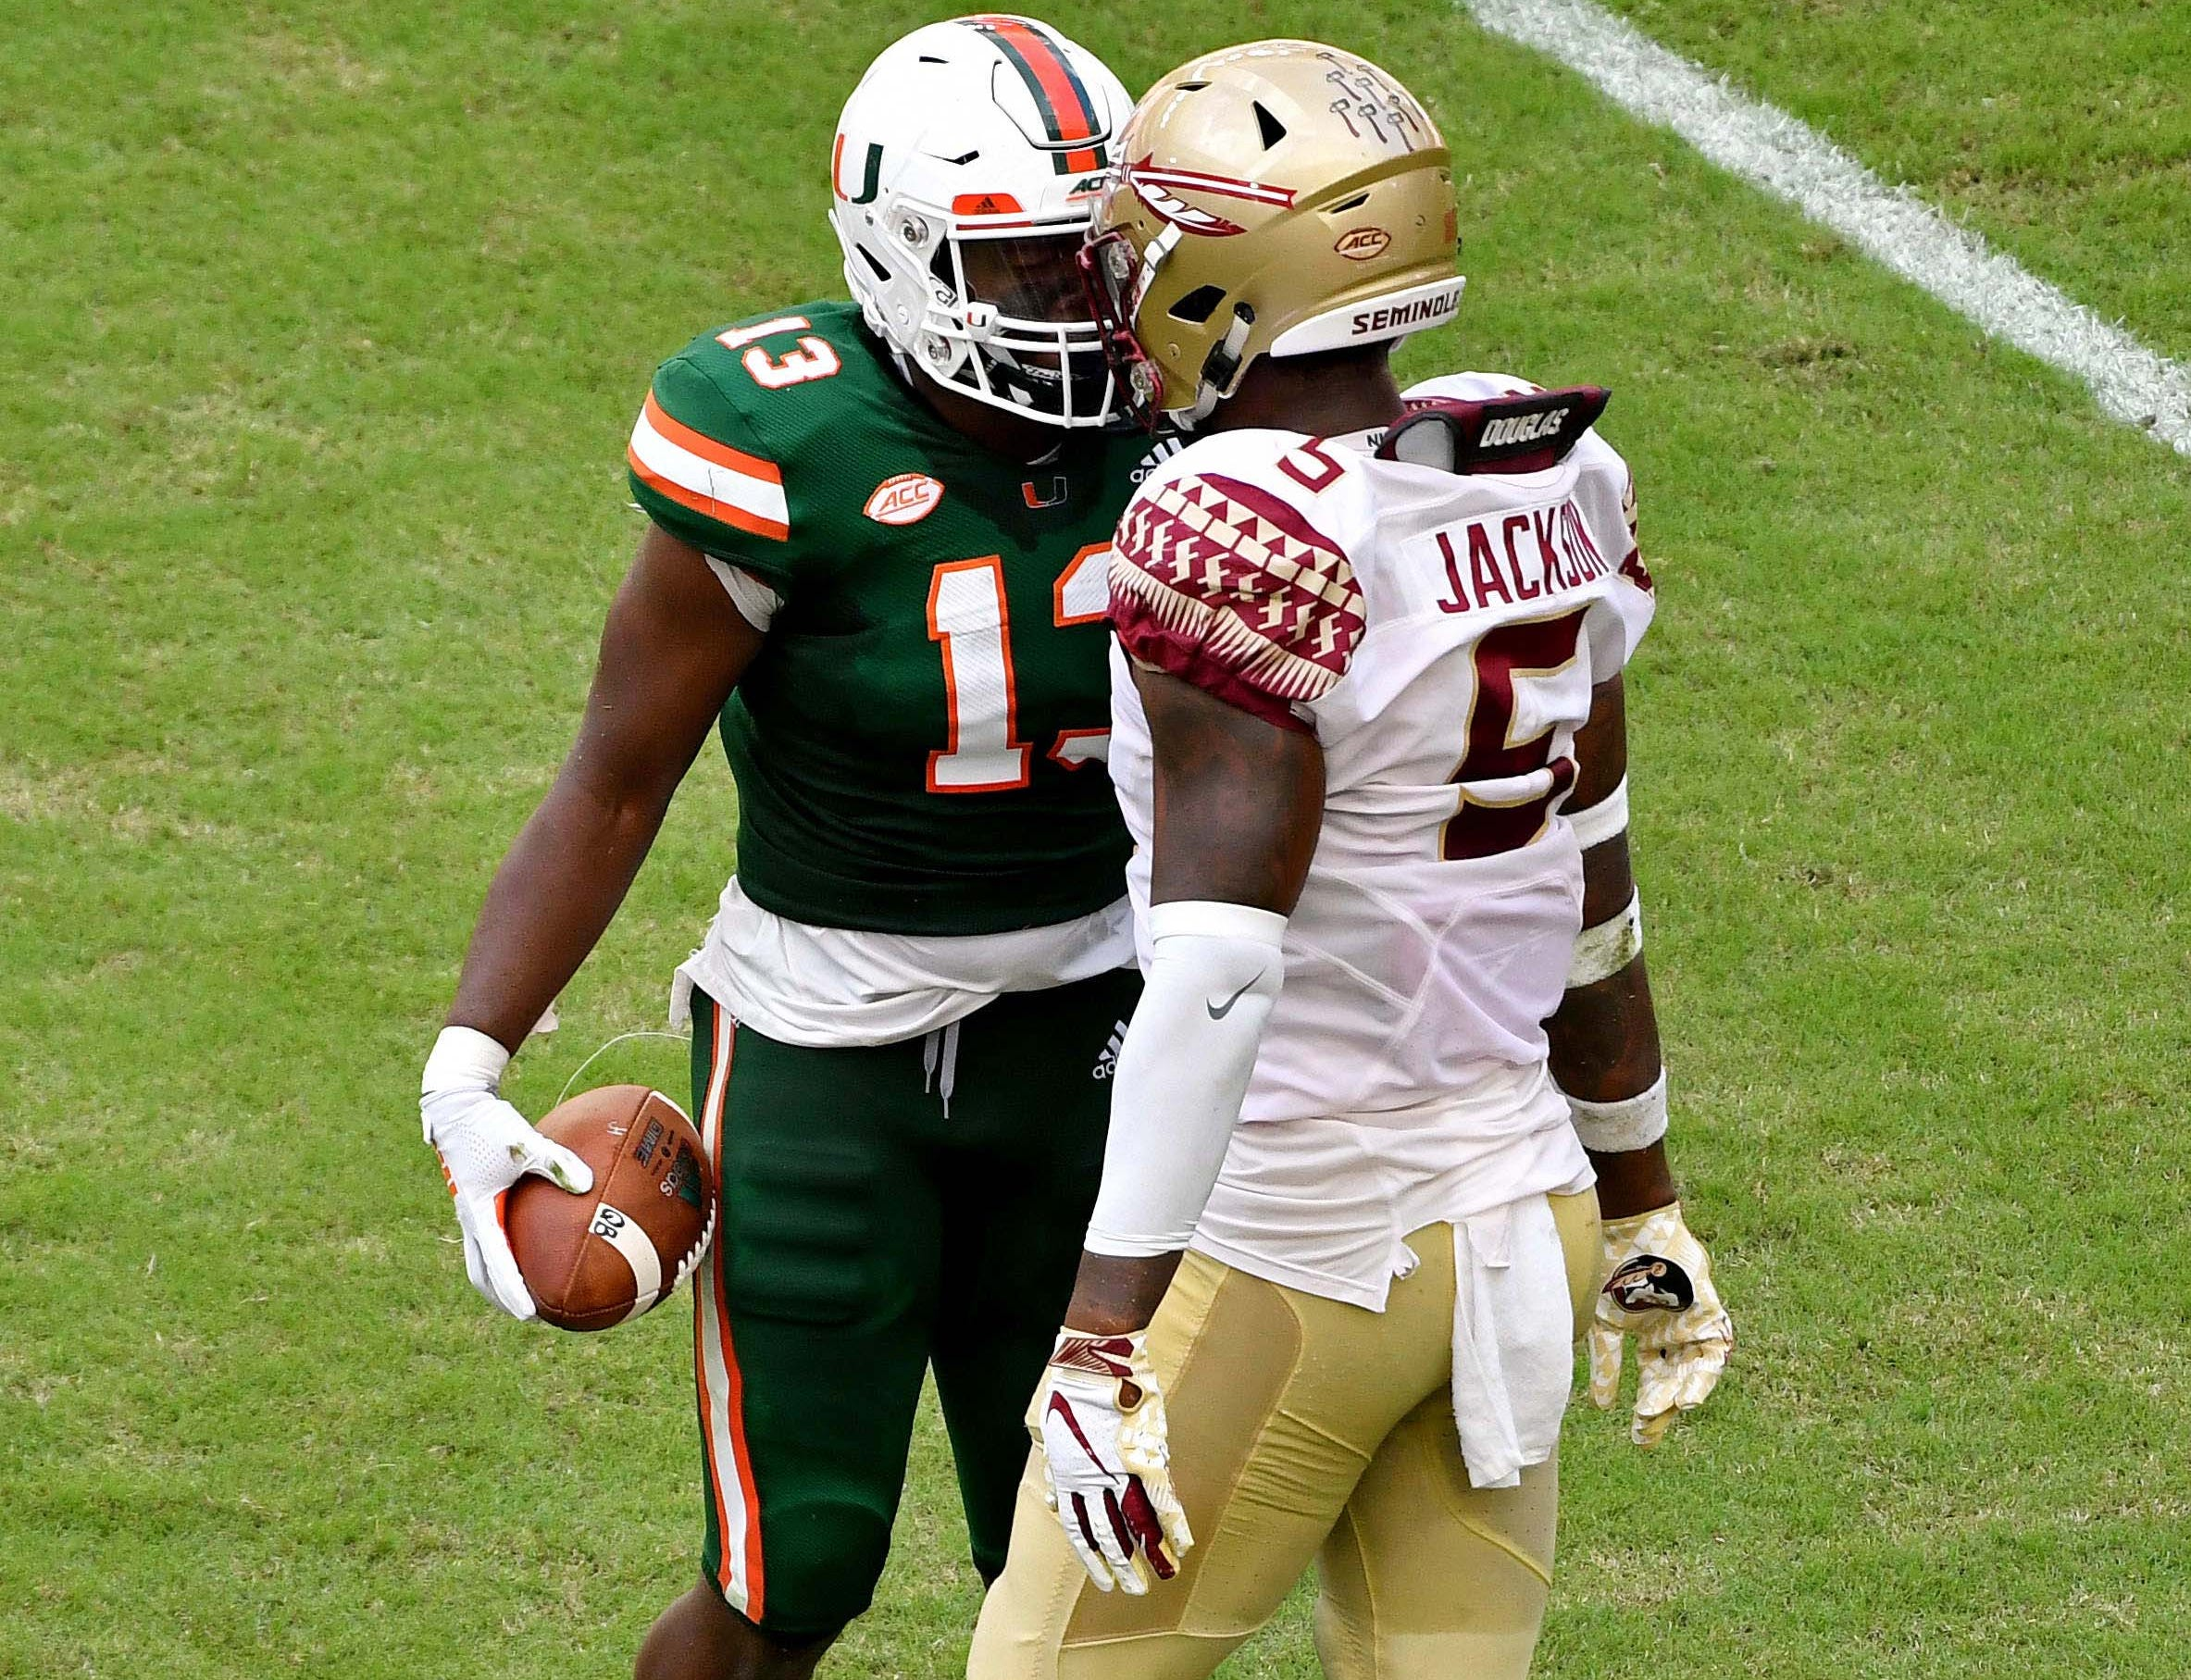 Oct 6, 2018; Miami Gardens, FL, USA; Miami Hurricanes running back DeeJay Dallas (13) and Florida State Seminoles linebacker Dontavious Jackson (5) both exchange words during the first half at Hard Rock Stadium. Mandatory Credit: Steve Mitchell-USA TODAY Sports